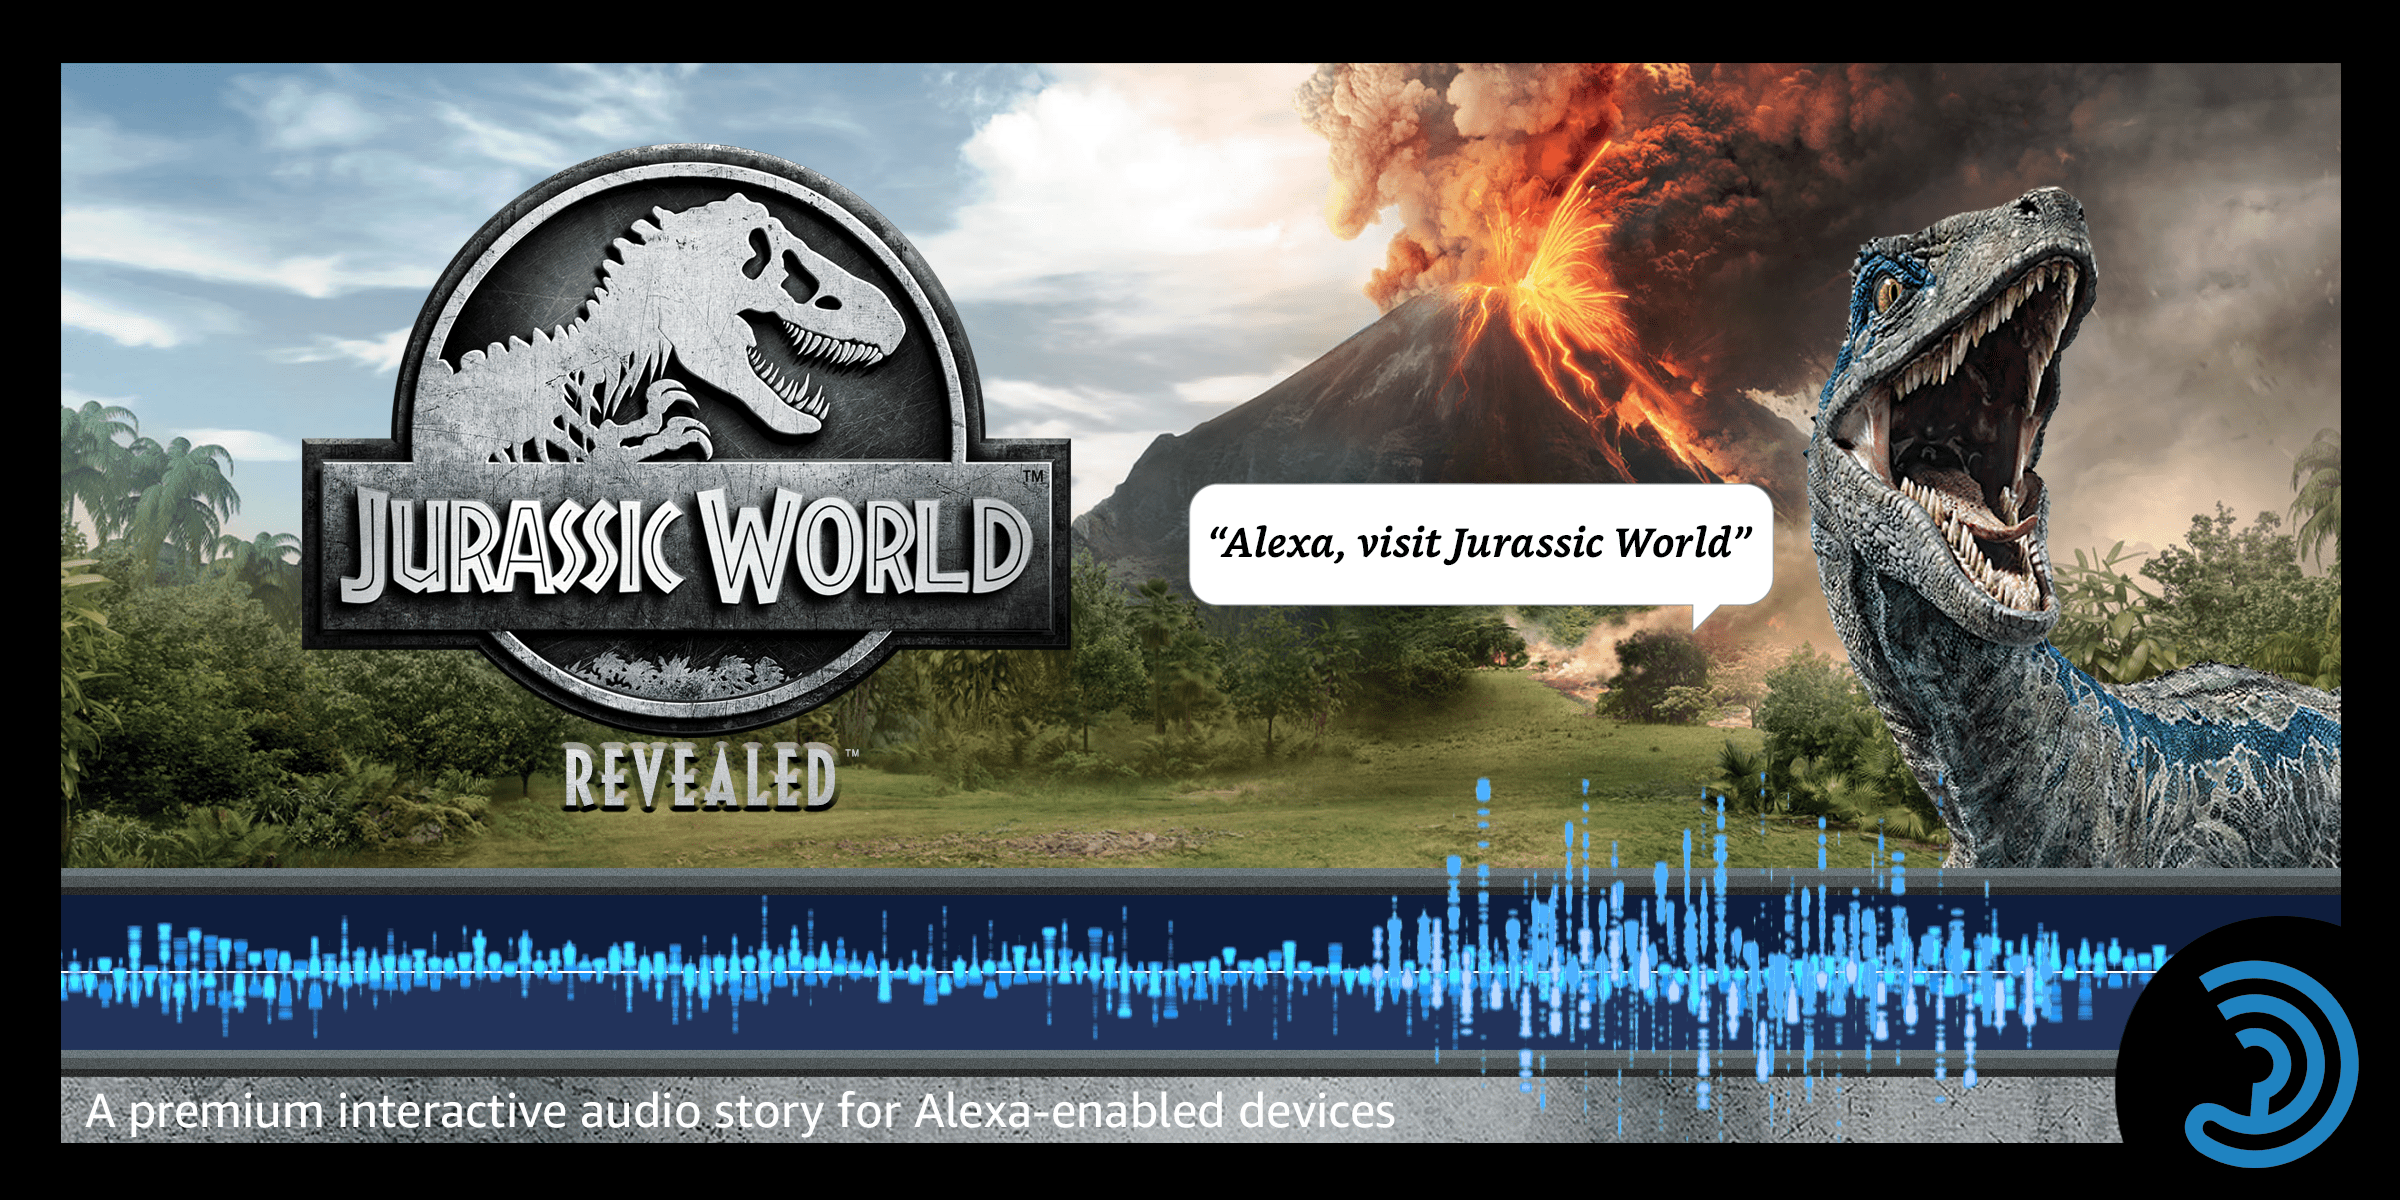 Jurassic World Revealed' exposes the limits of Alexa games